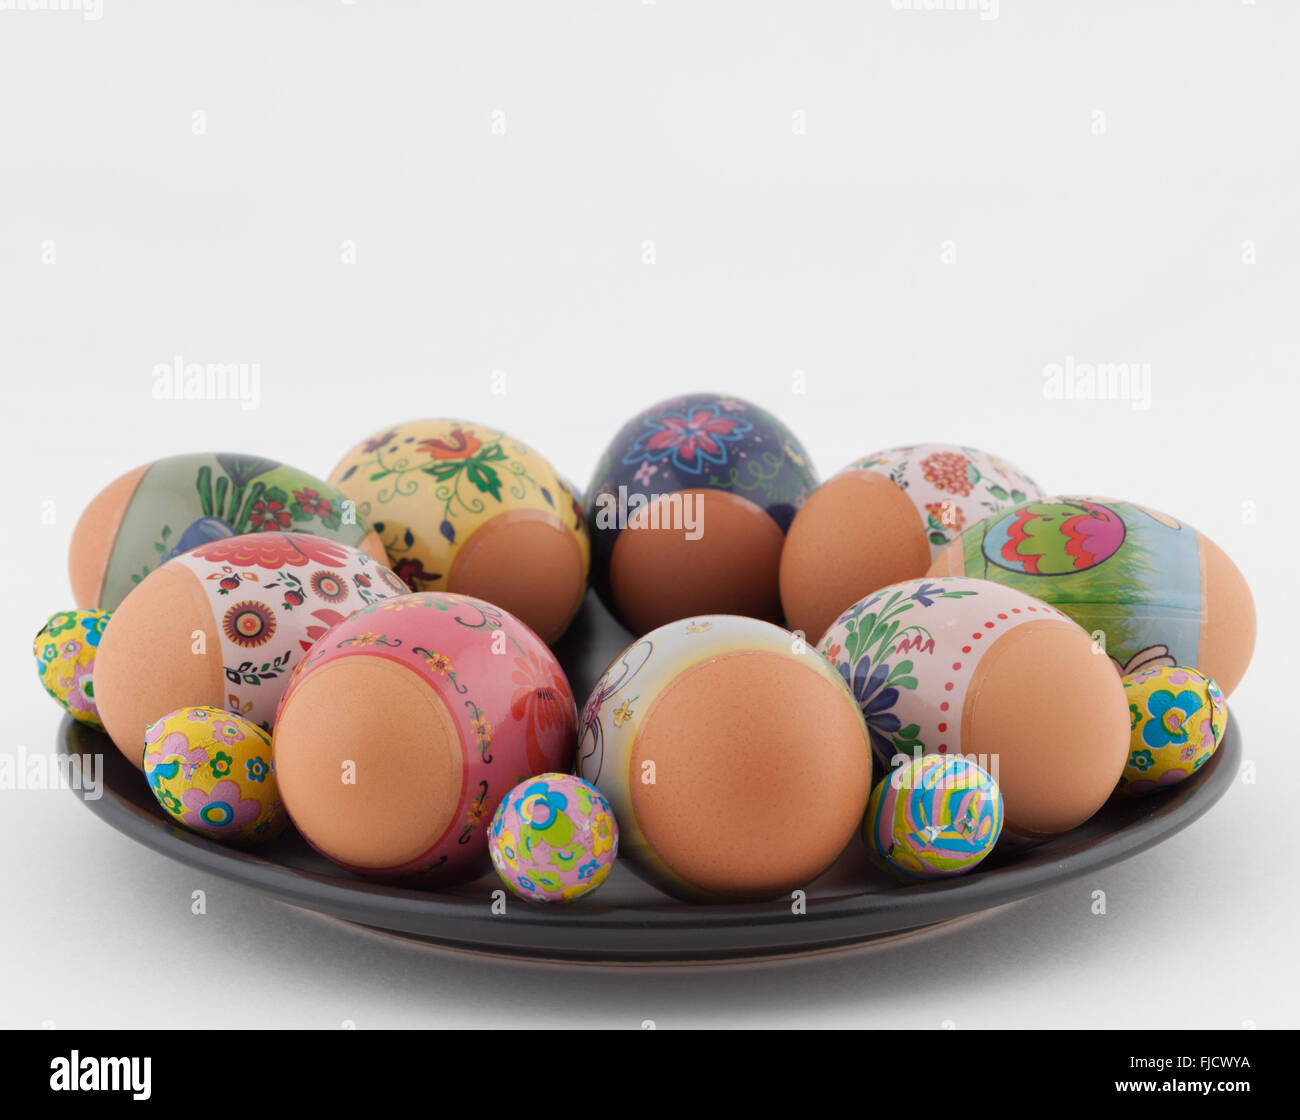 Easter Eggs And Chocolates On Black Plate Closeup